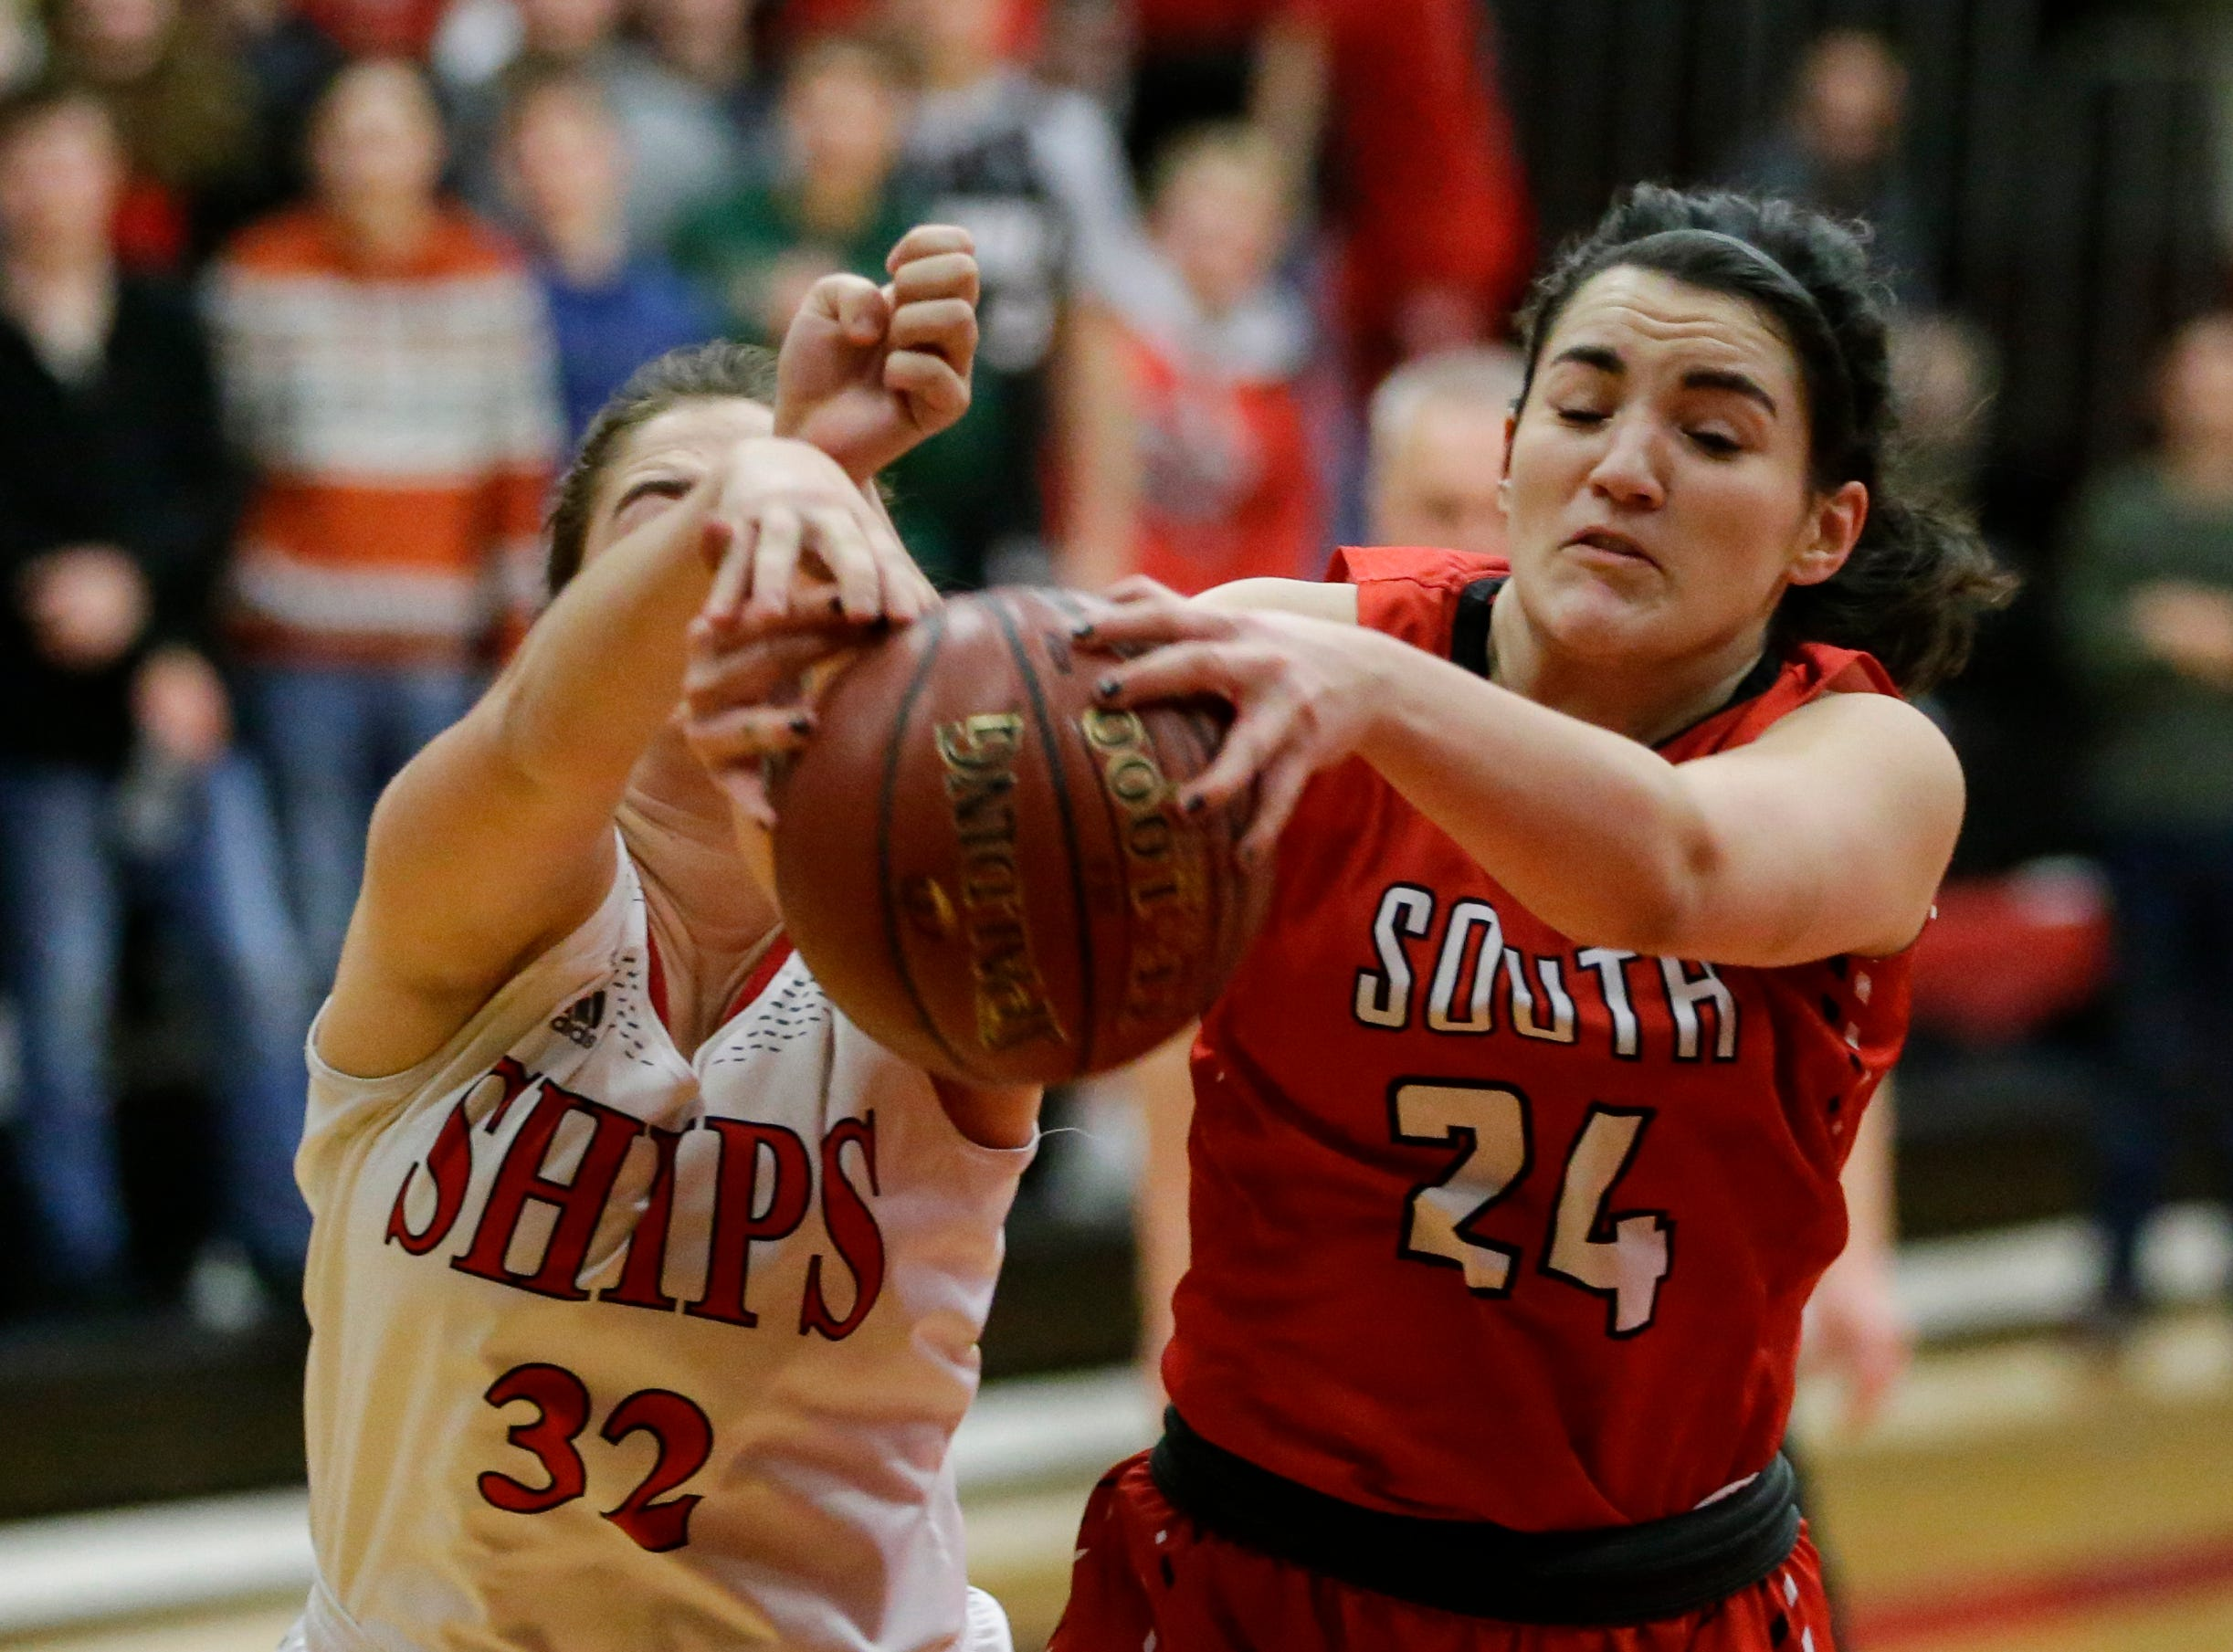 Sheboygan South's Amy Pfile battles Manitowoc Lincoln's Emily Balaban for the ball during an FRCC matchup at Manitowoc Lincoln High School Friday, January 4, 2019, in Manitowoc, Wis. Joshua Clark/USA TODAY NETWORK-Wisconsin